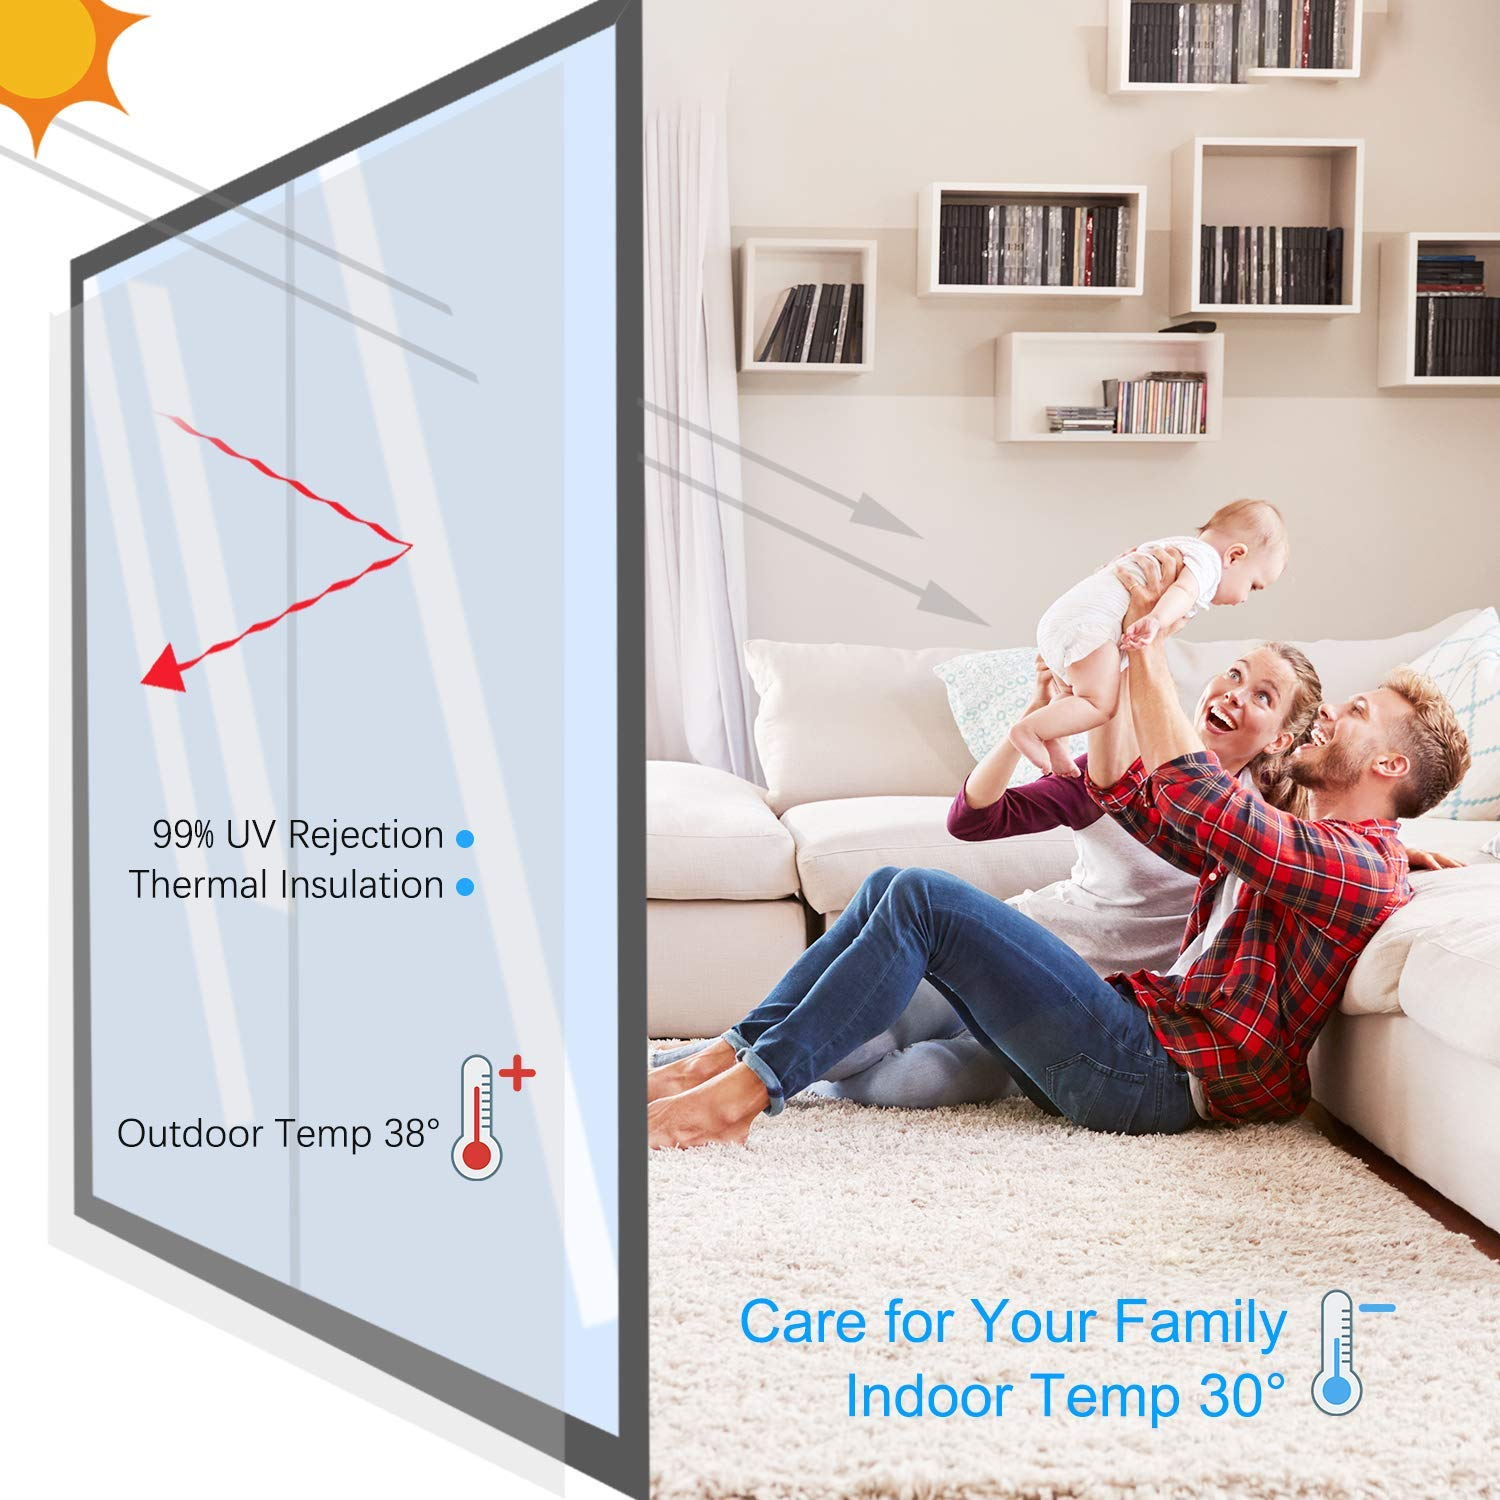 Silver, 23.6 x 78.7 One Way Mirror Window Film Anti UV Window Tint Decorative Daytime Privacy Glass Heat Control Reflective Window Tint for Home Office Living Room Meeting Room